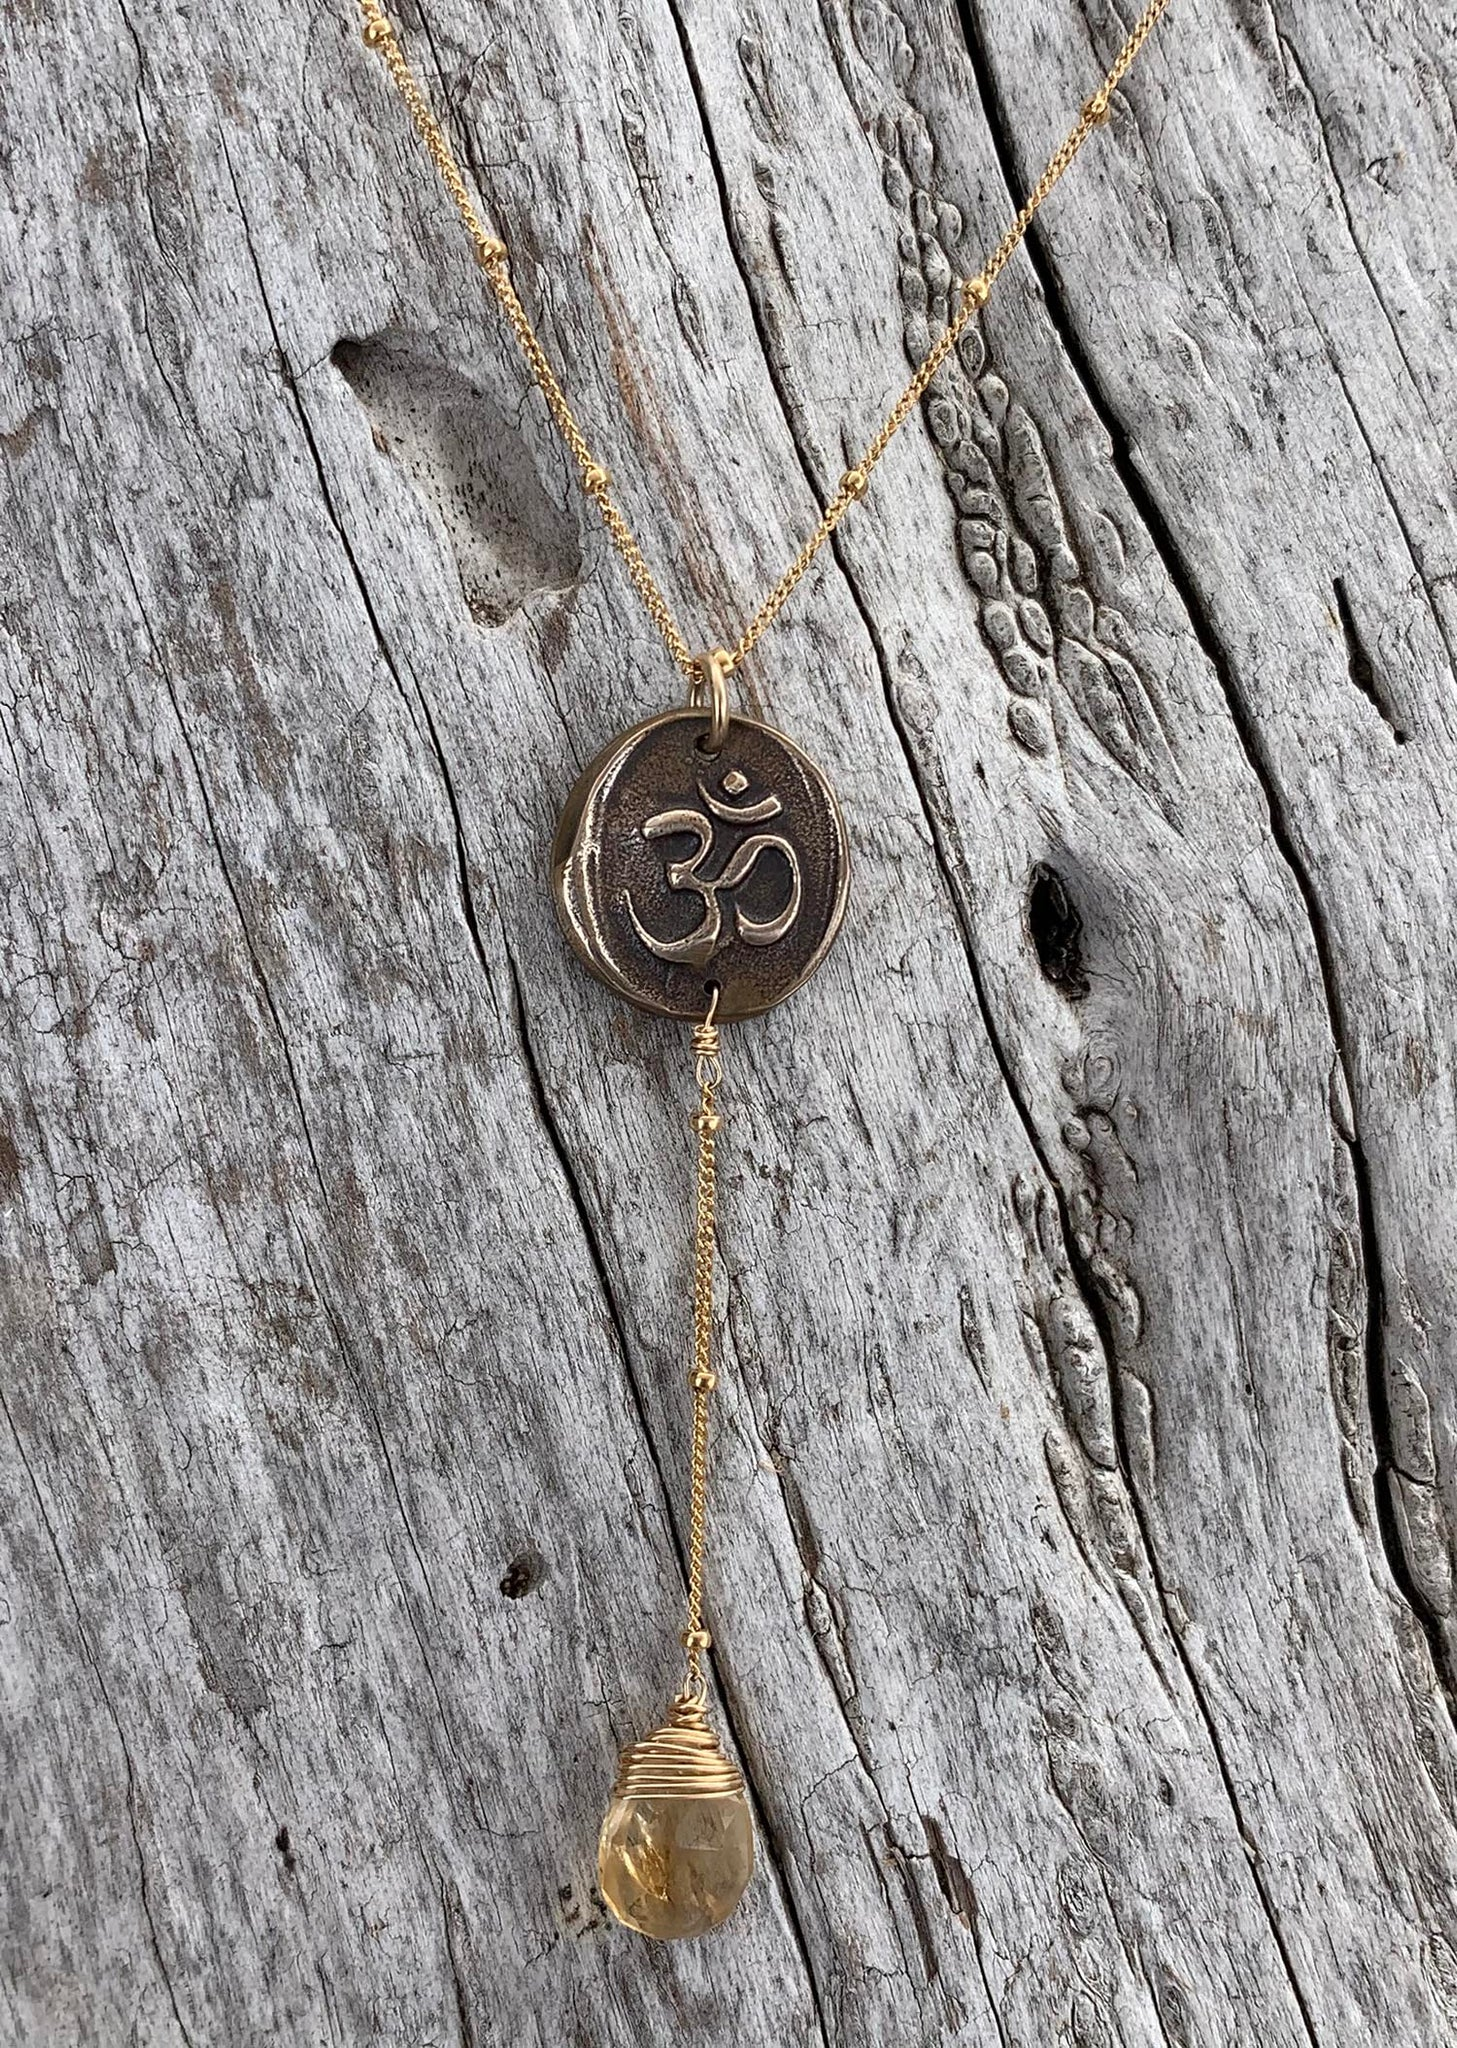 Handmade Gold Fill OM Lariat Delicate Necklace with Citrine Drop